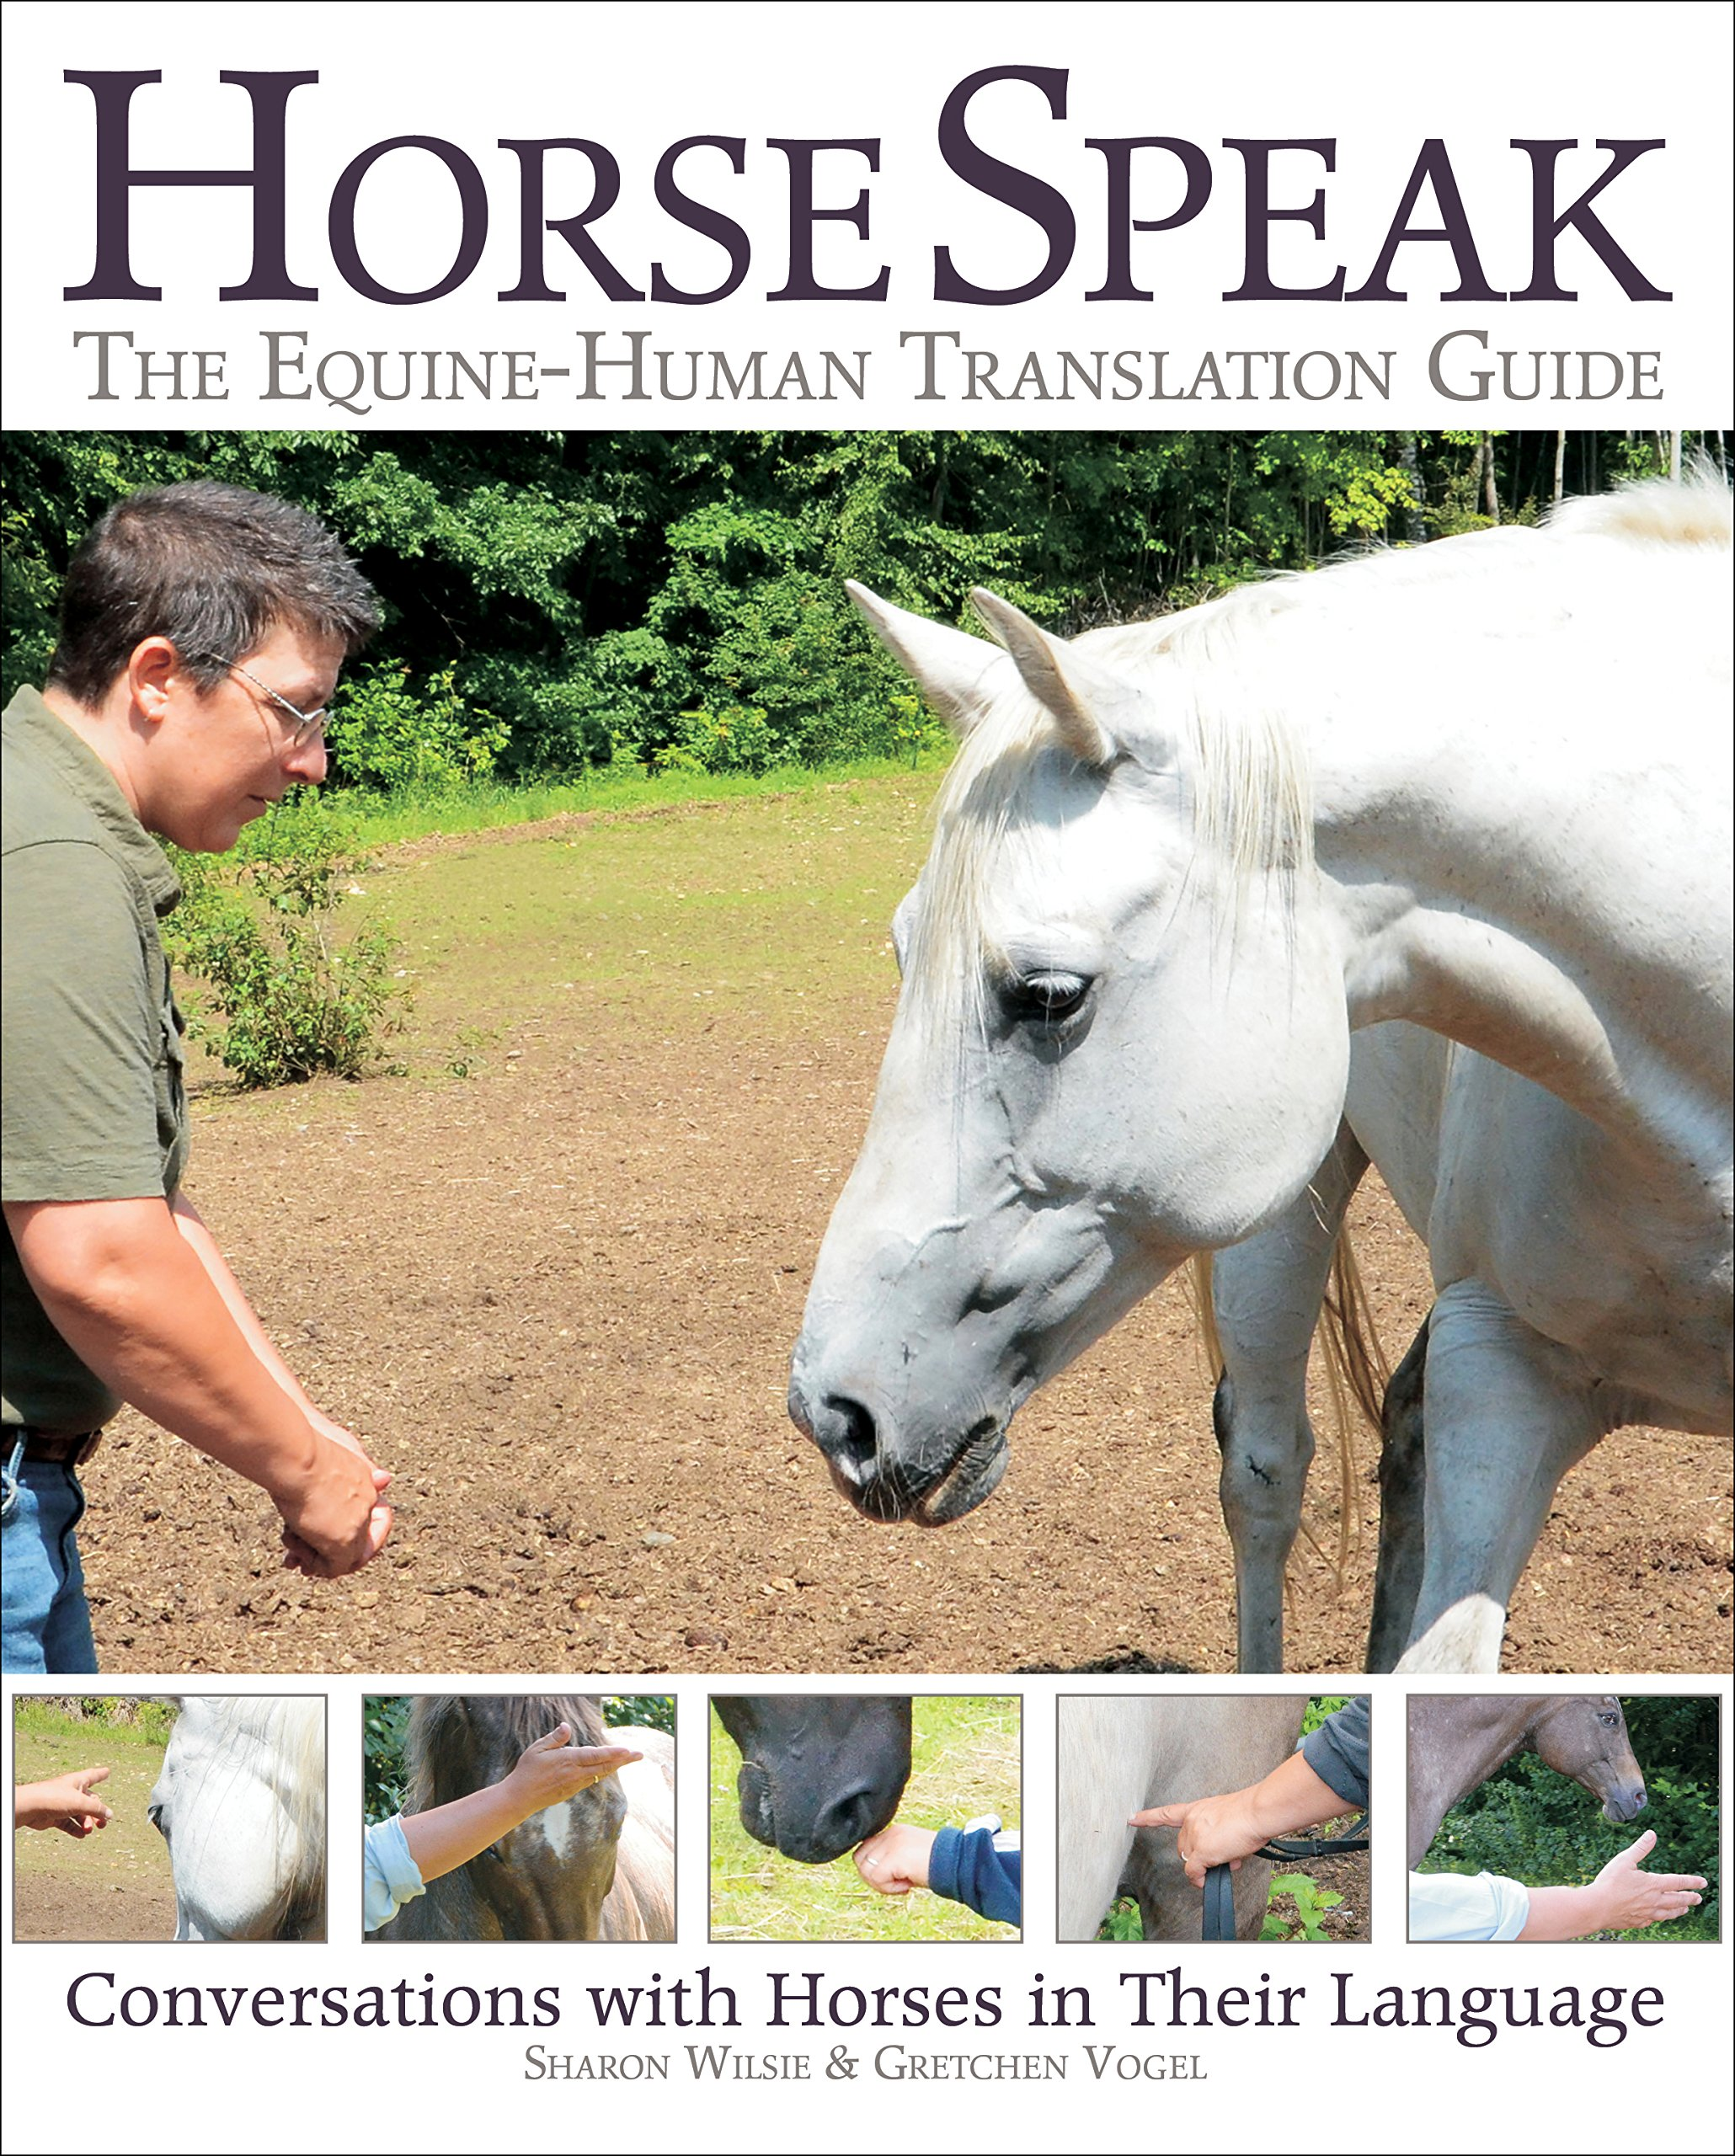 Horse Speak: An Equine-Human Translation Guide: Conversations with Horses in Their Language by Trafalgar Square Books